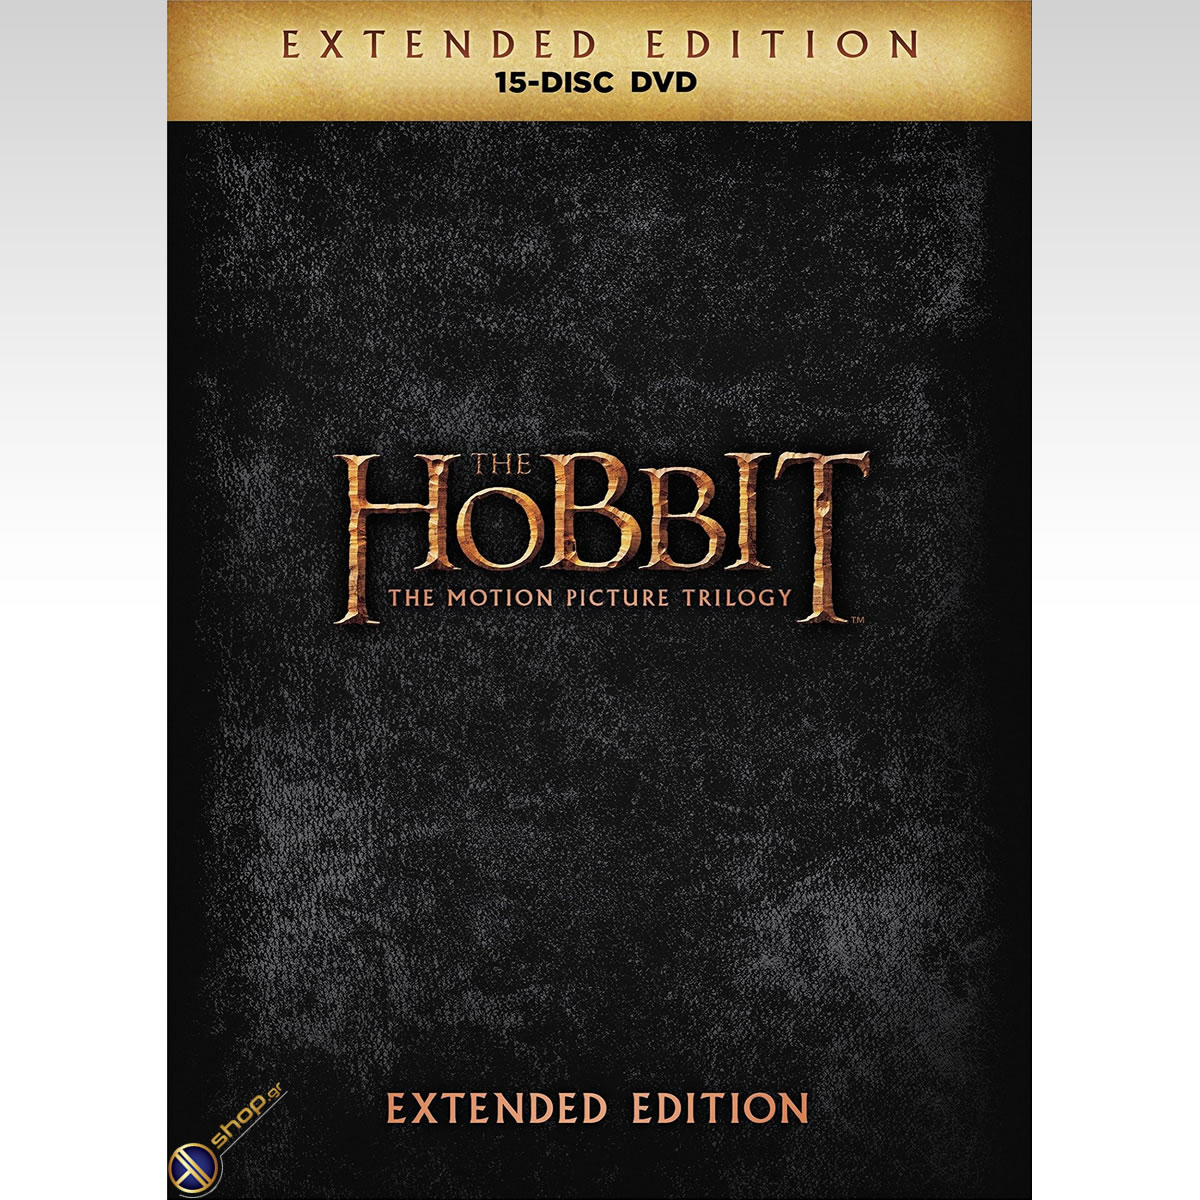 THE HOBBIT: THE MOTION PICTURE TRILOGY Extended Edition - ΧΟΜΠΙΤ: Η ΤΡΙΛΟΓΙΑ Extended Edition [ΕΛΛΗΝΙΚΟ] (15 DVDs)